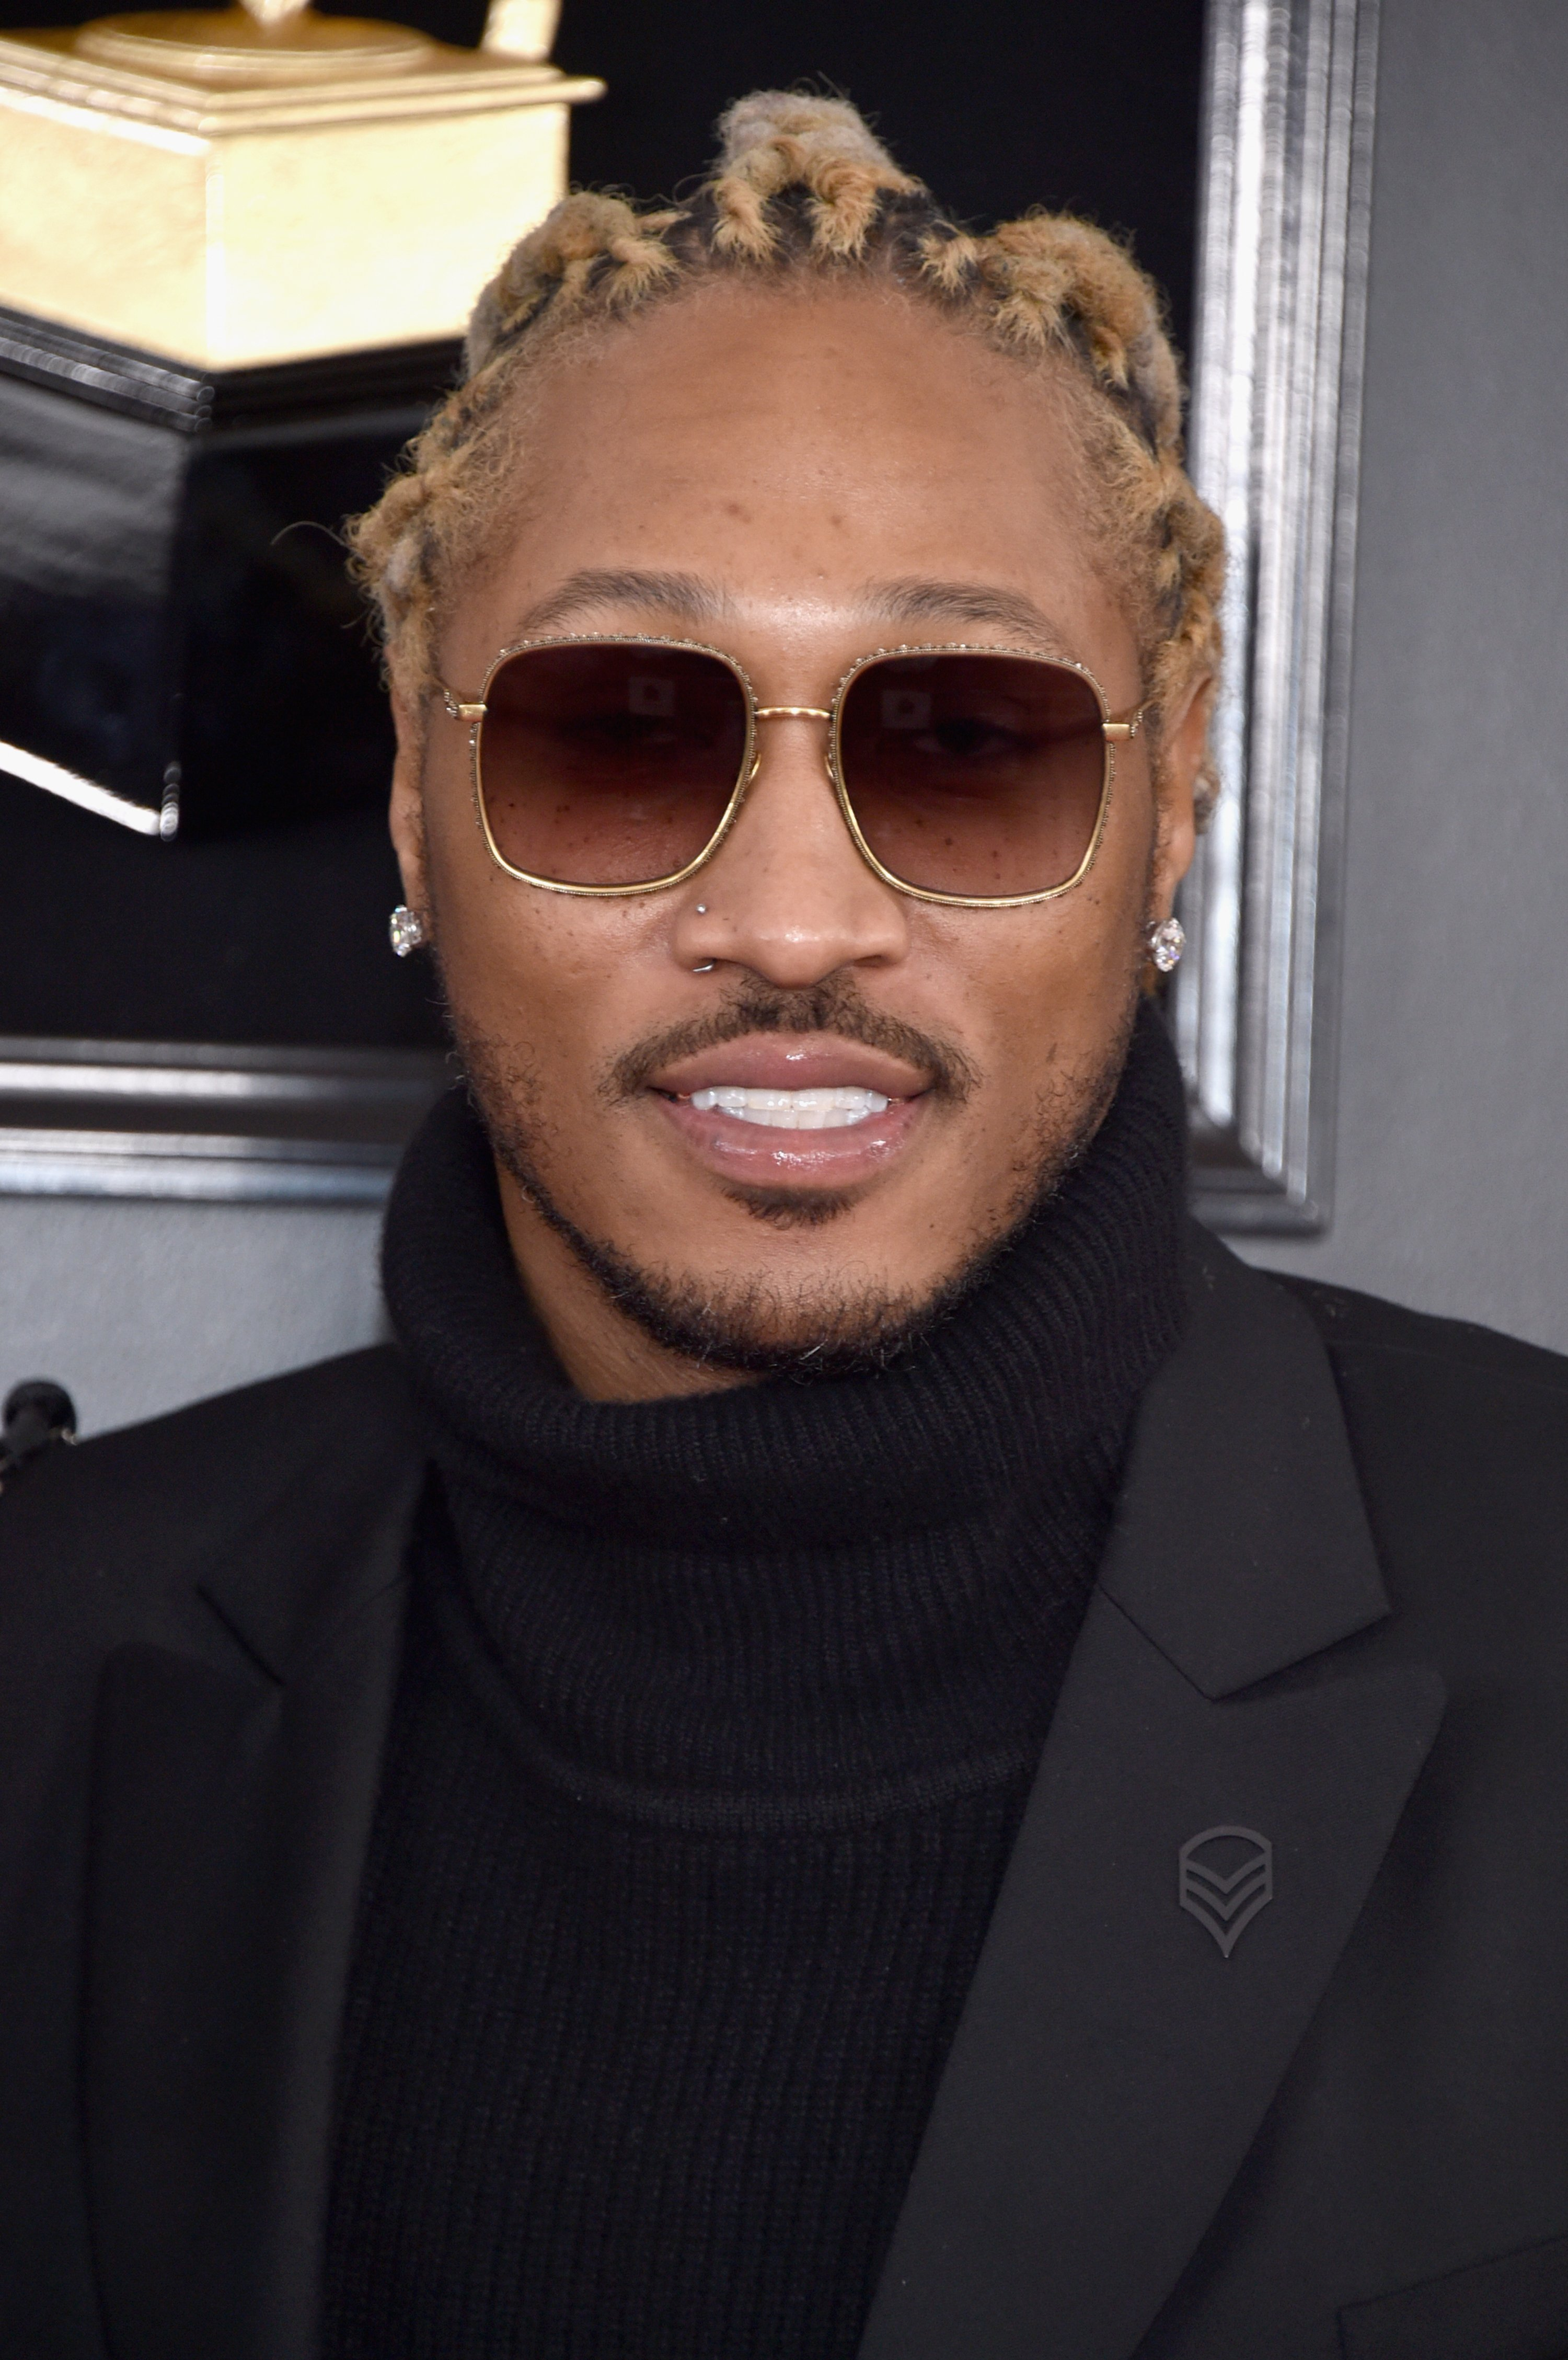 Future at the 61st Annual GRAMMY Awards on Feb. 10, 2019 in California | Photo: Getty Images